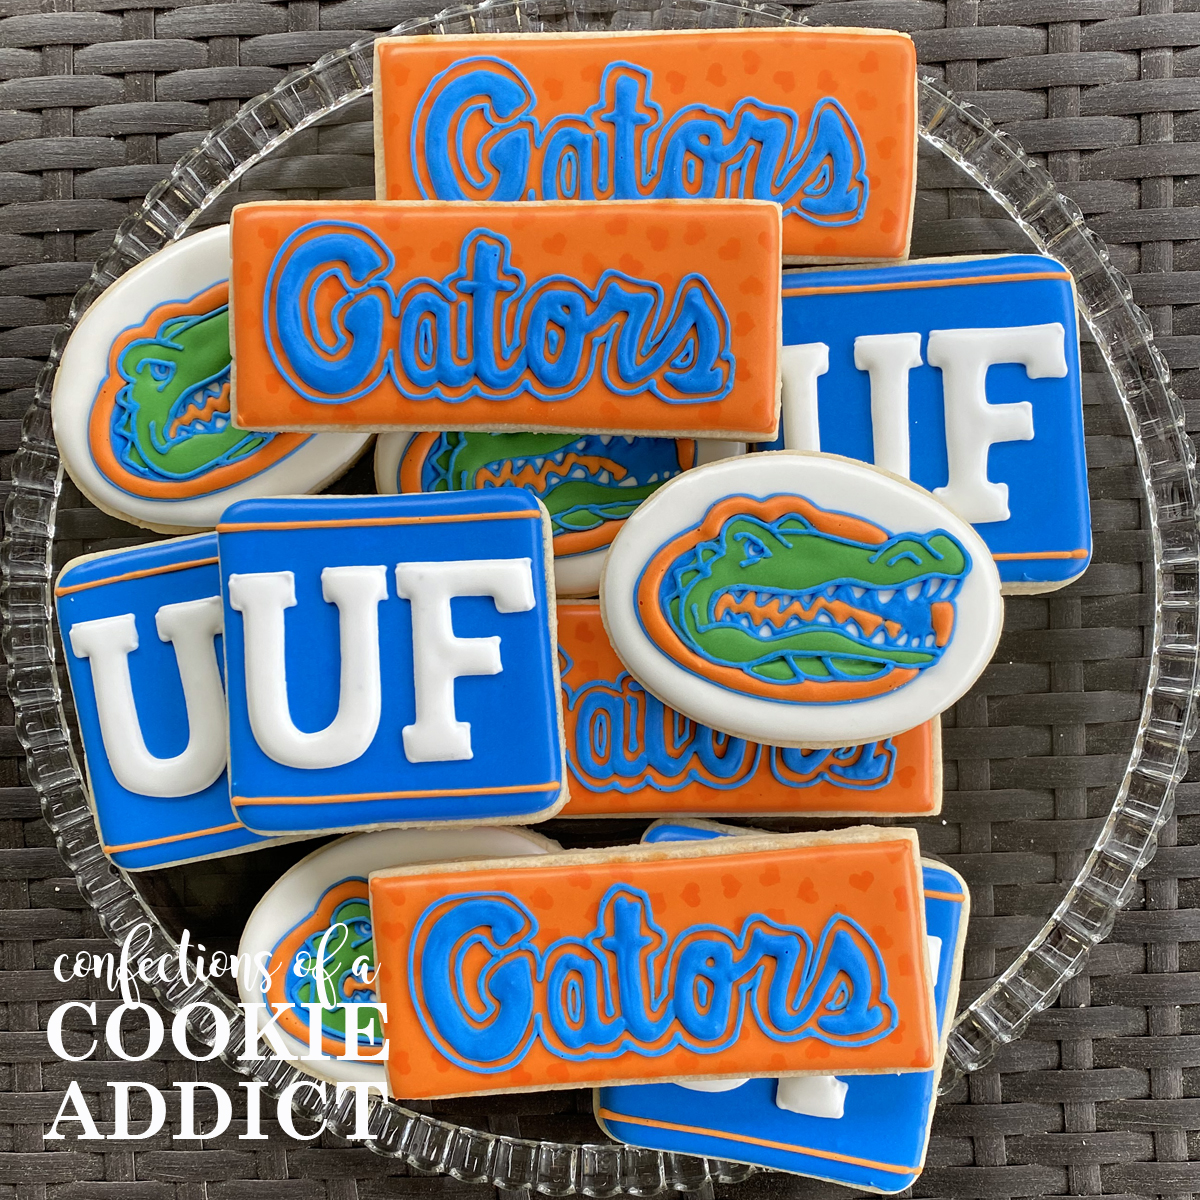 University of Florida Cookiesrs2020